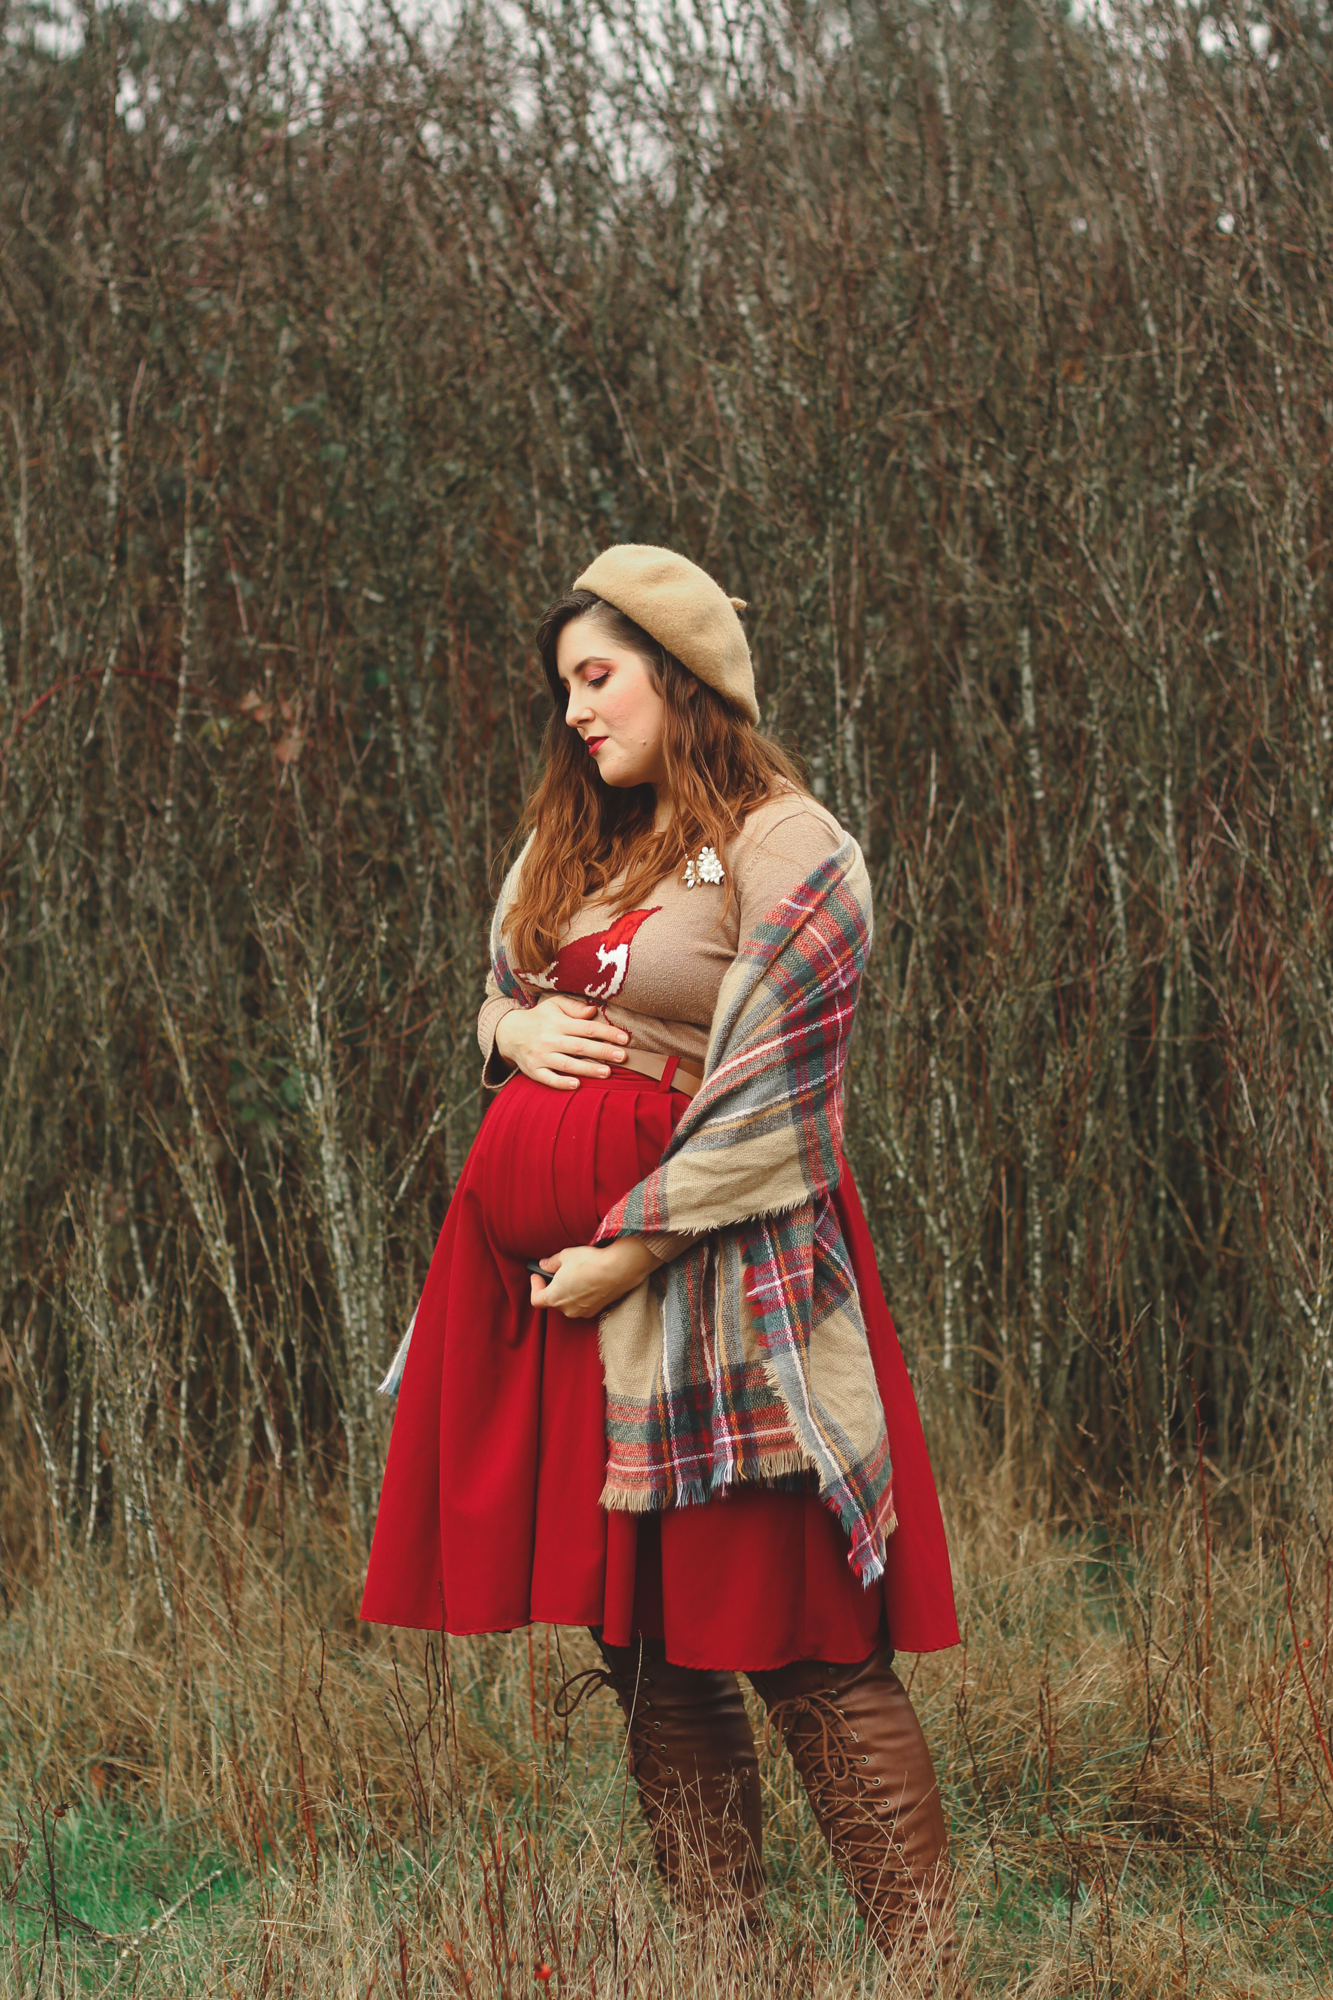 vintage-inspired maternity outfit of a bird sweater and maroon skirt